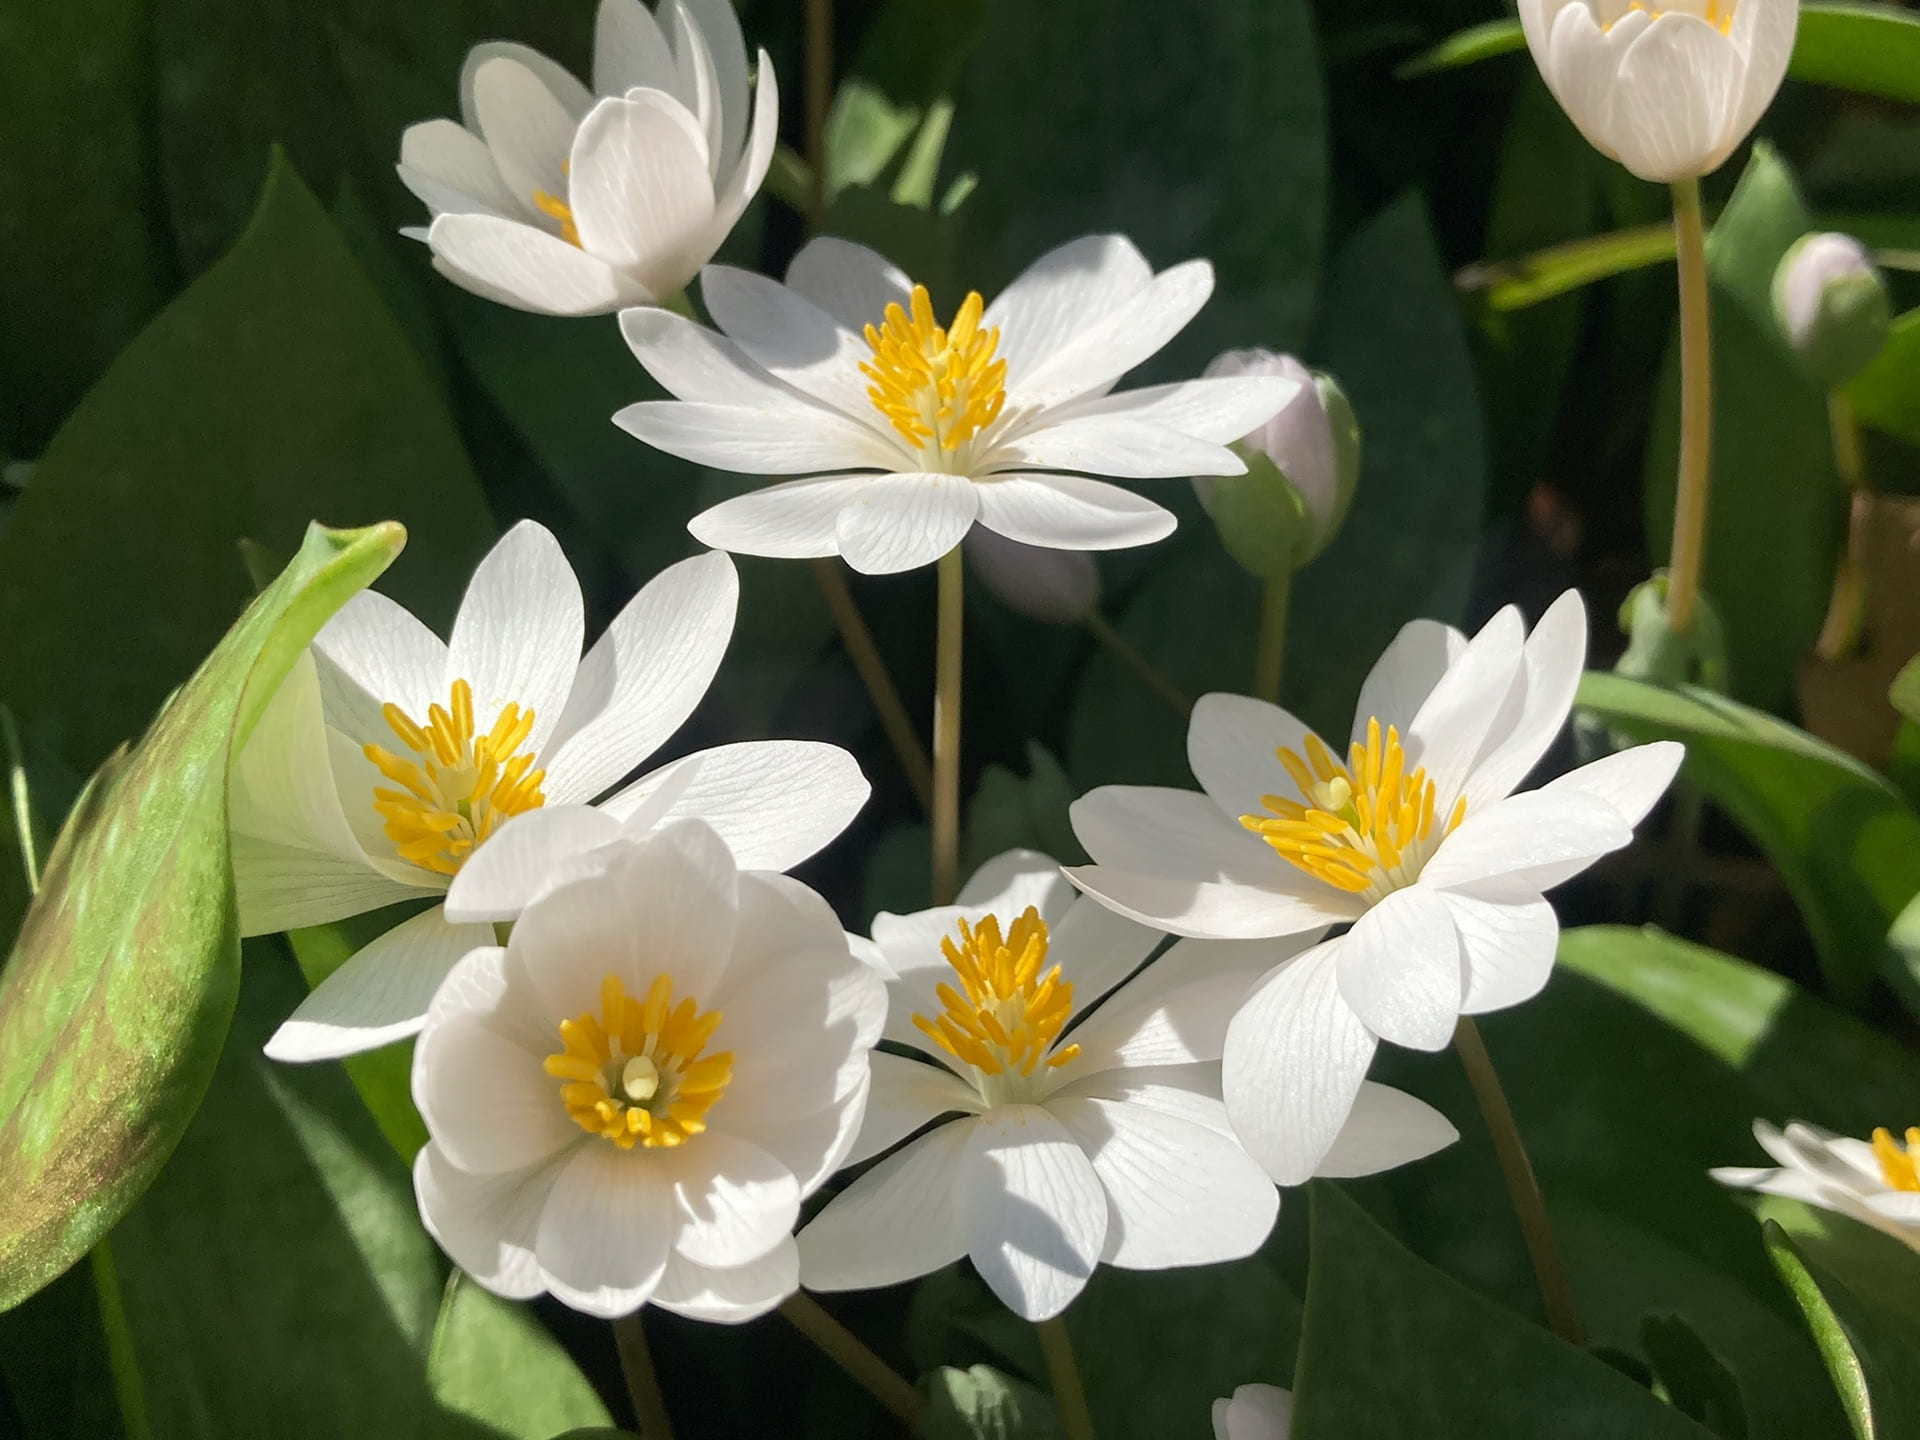 Bloodroot, Sanguinaria canadensis, grows through the park's patch of trout lilies.